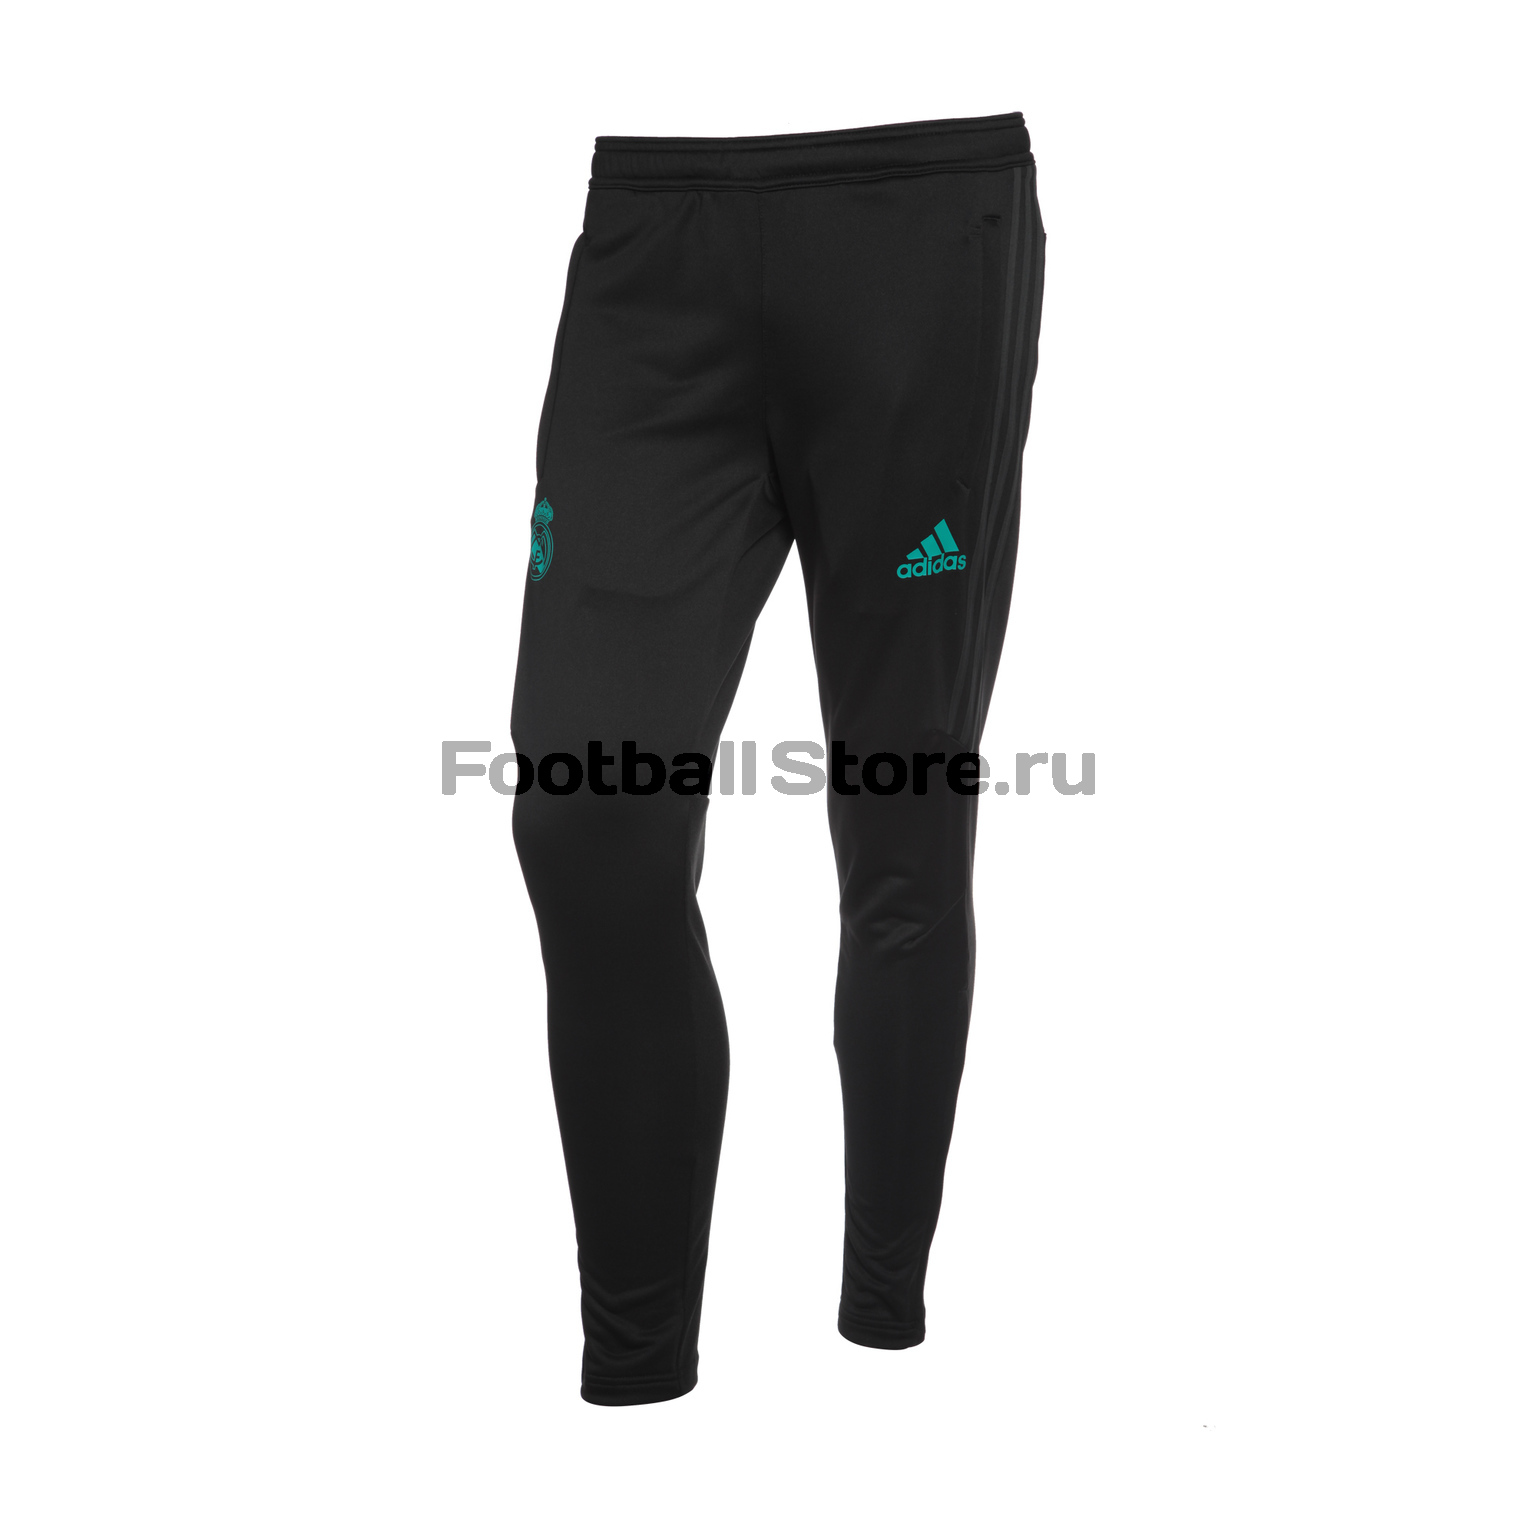 Real Madrid Adidas Брюки Adidas Real Madrid BQ7931 real madrid adidas свитер adidas real madrid euhybrid top bq7851